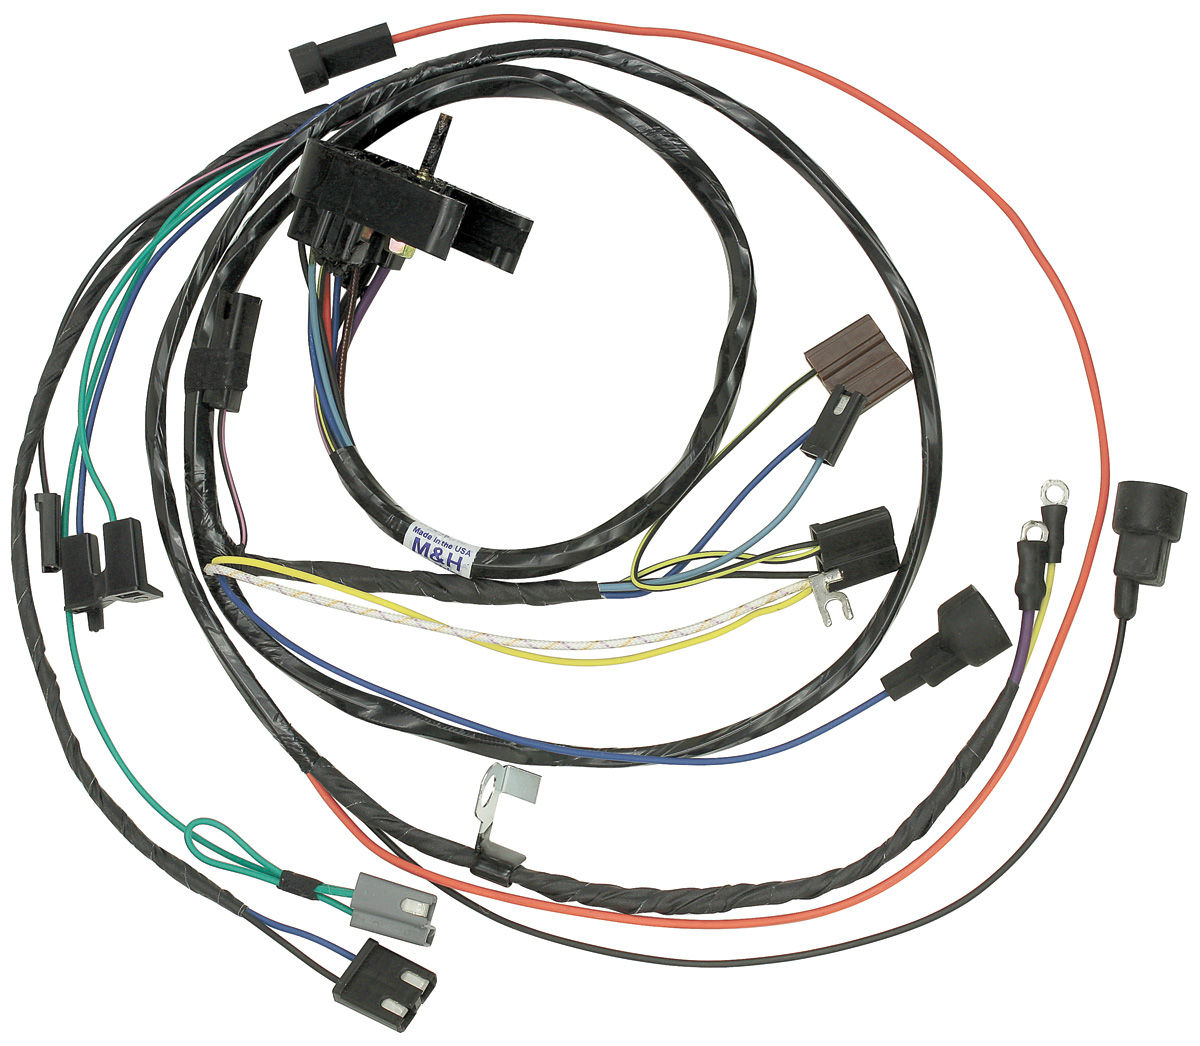 14700 lrg m&h 1970 chevelle engine harness v8 w auto trans @ opgi com 1970 chevelle engine wiring harness at n-0.co